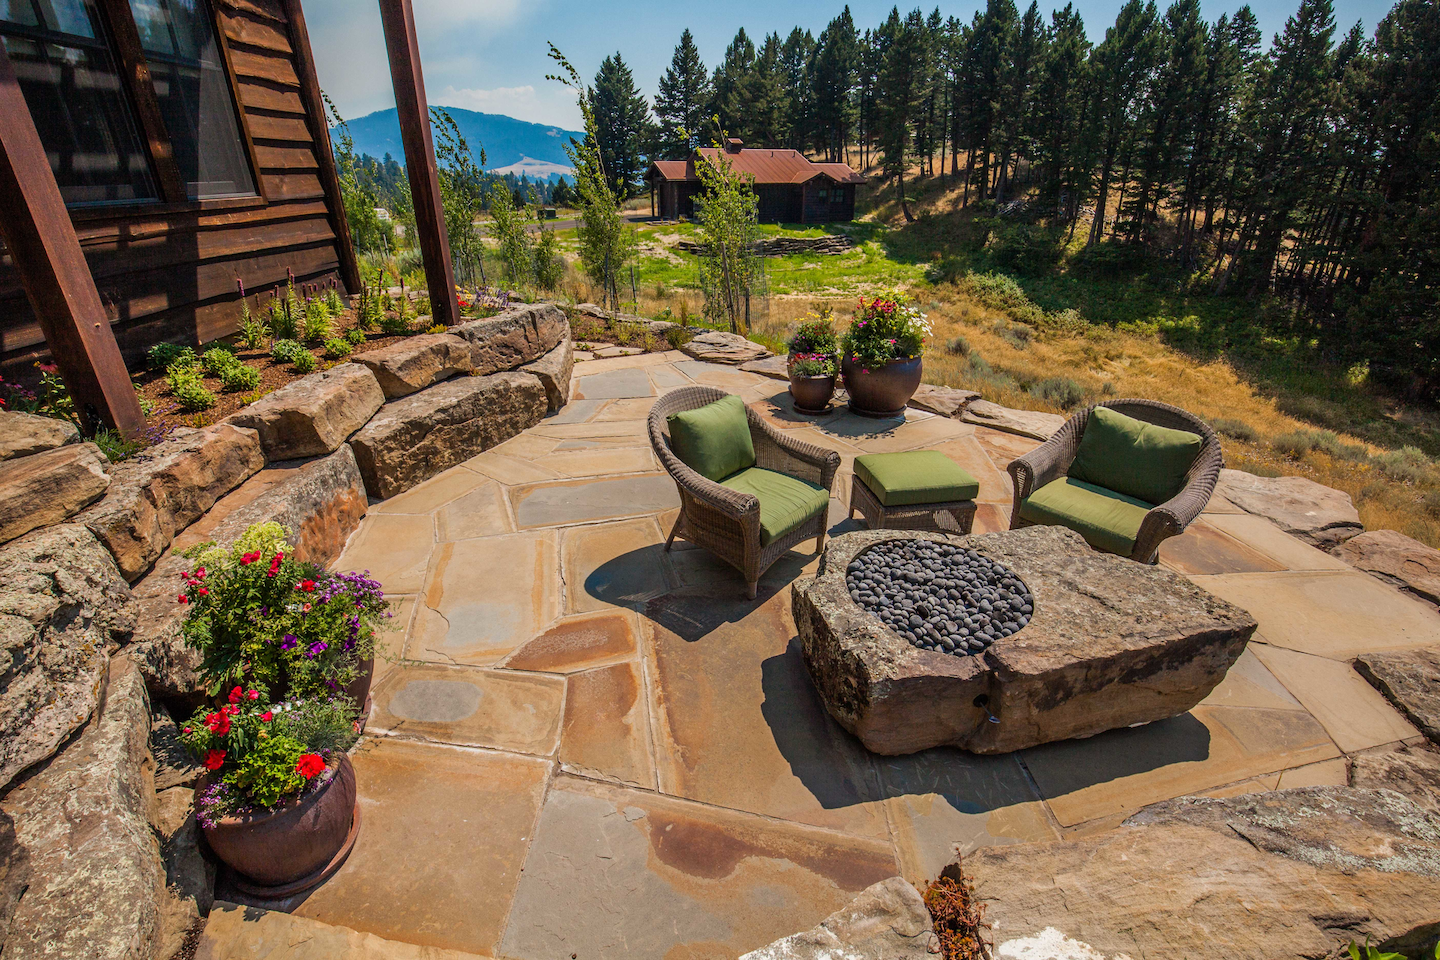 outdoor seating area on rock patio